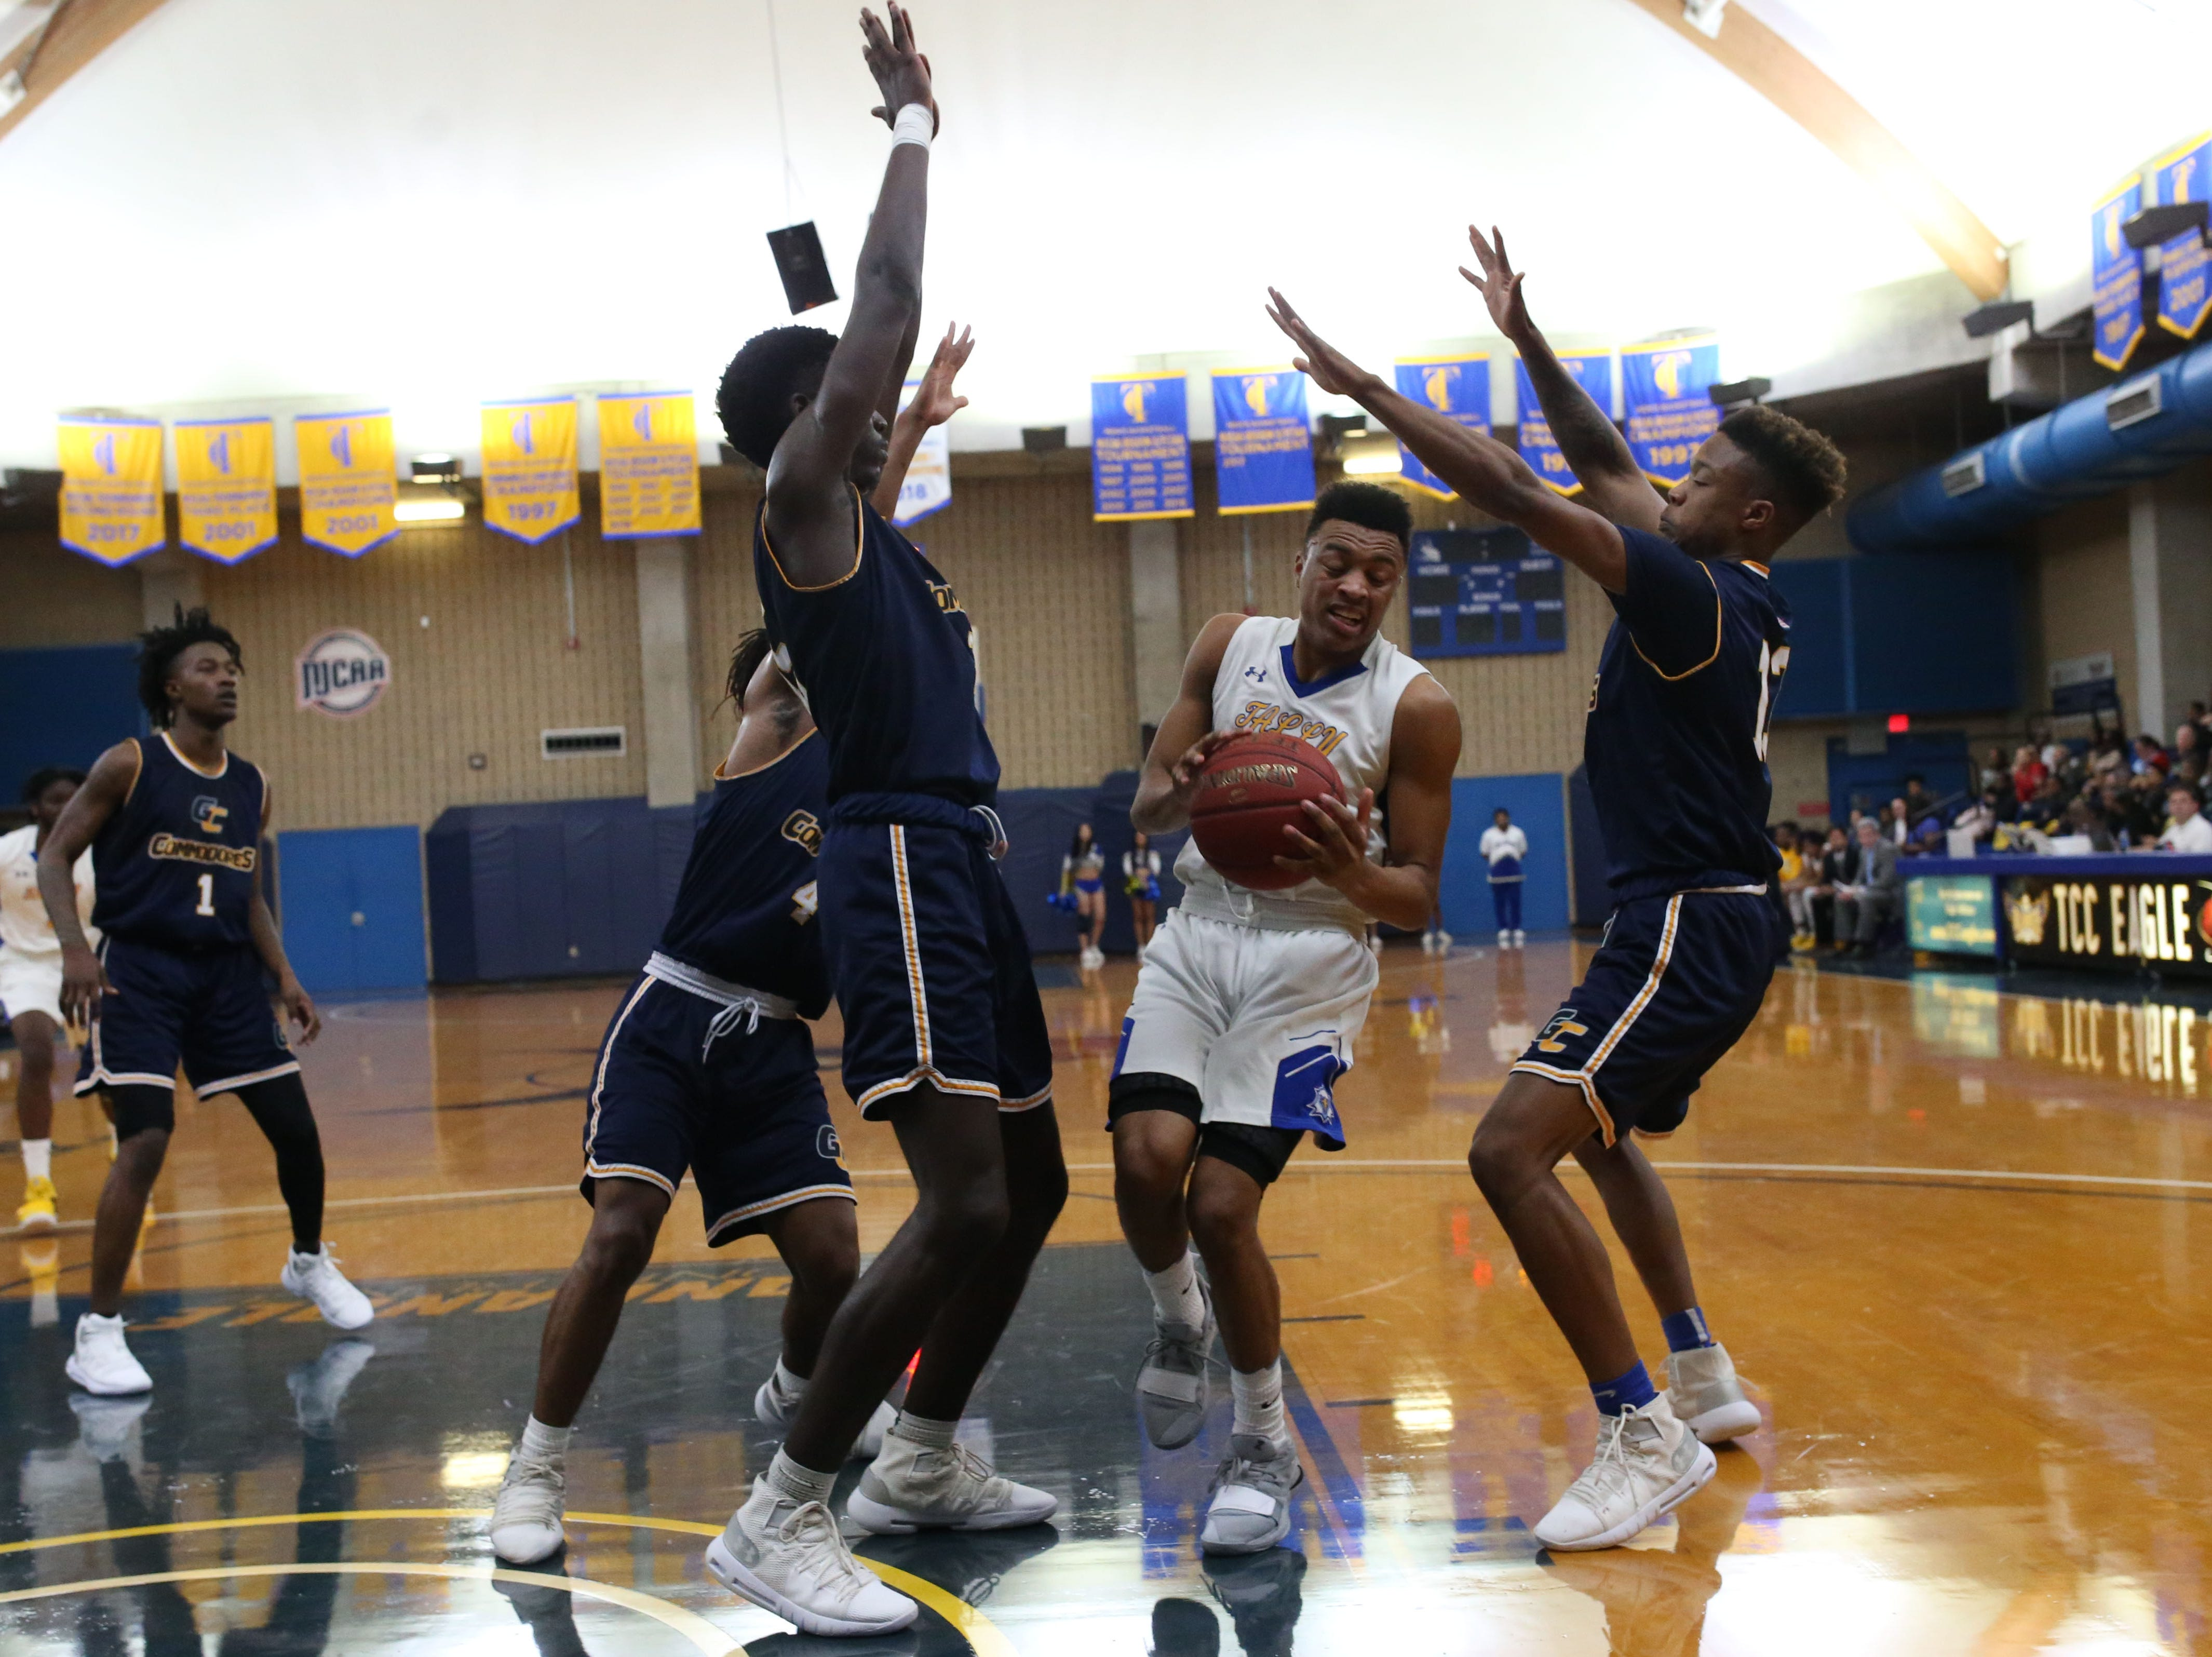 The Tallahassee Community College Eagles host the Gulf Coast State College Commodores in a conference match-up in the Eagledome, Saturday, Jan. 5, 2019.